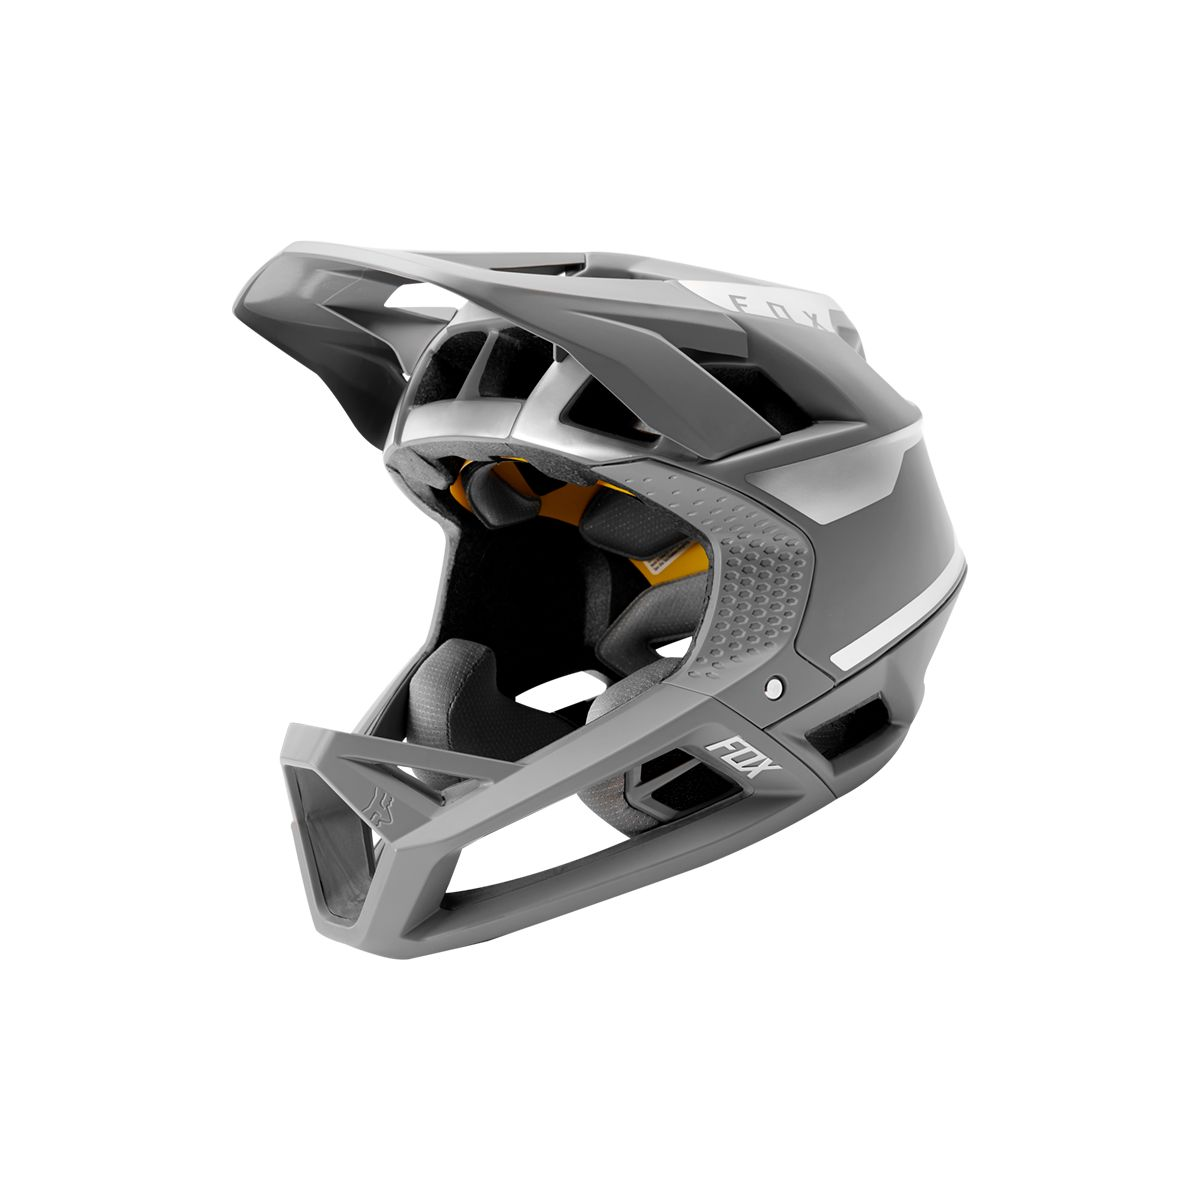 PROFRAME full-face helmet with MIPS